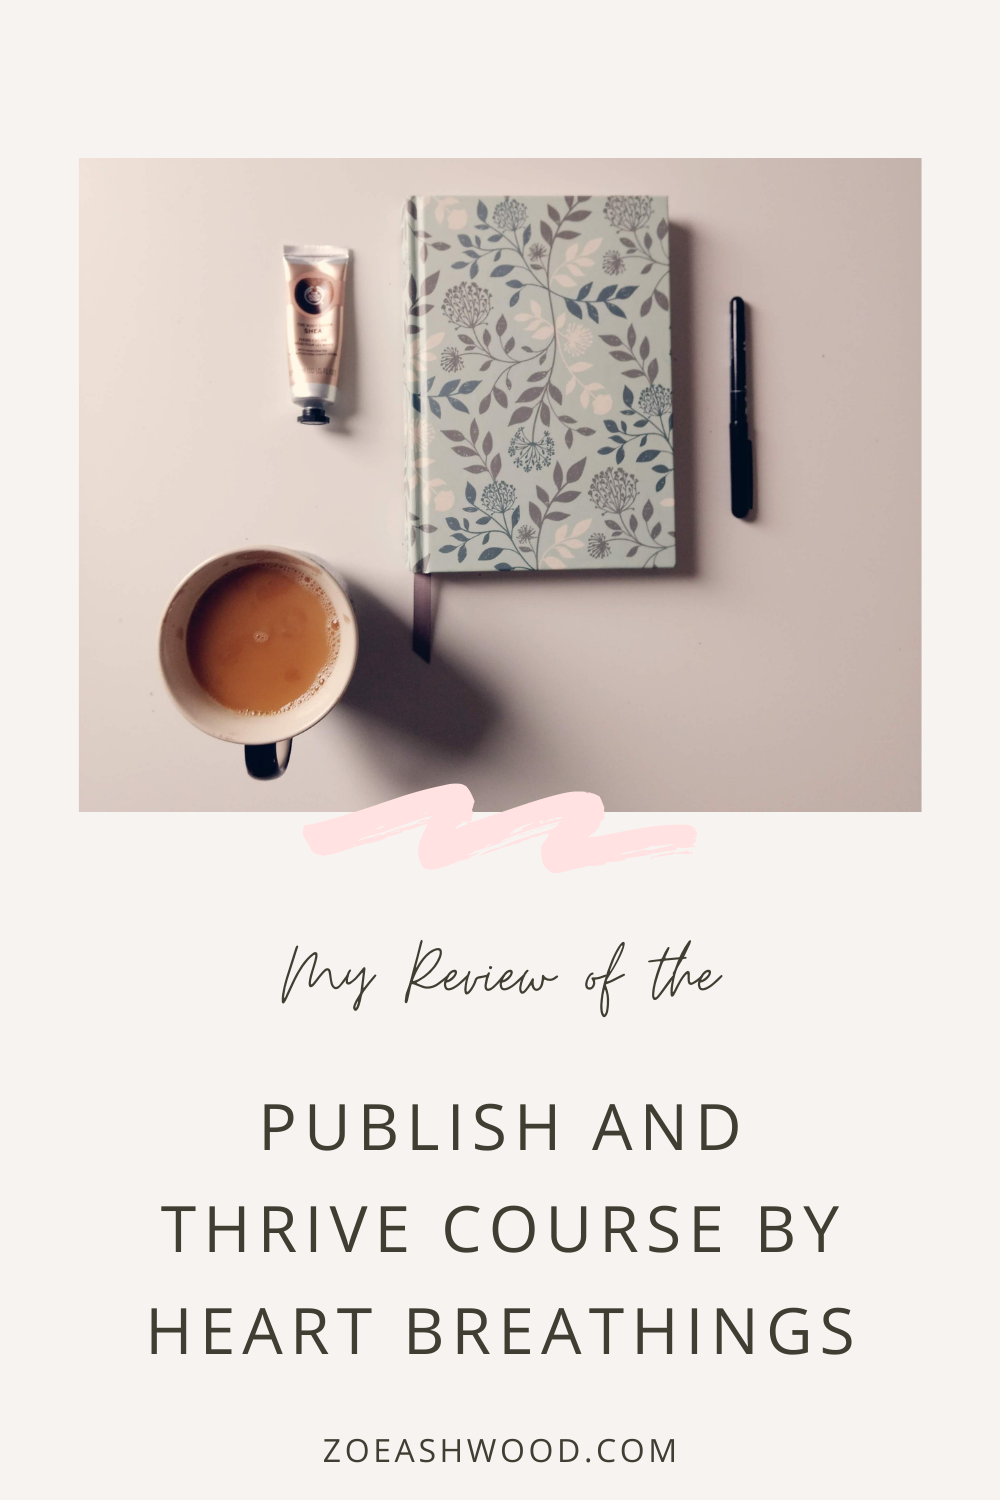 Publish and Thrive by Heart Breathings - Course Review by Zoe Ashwood